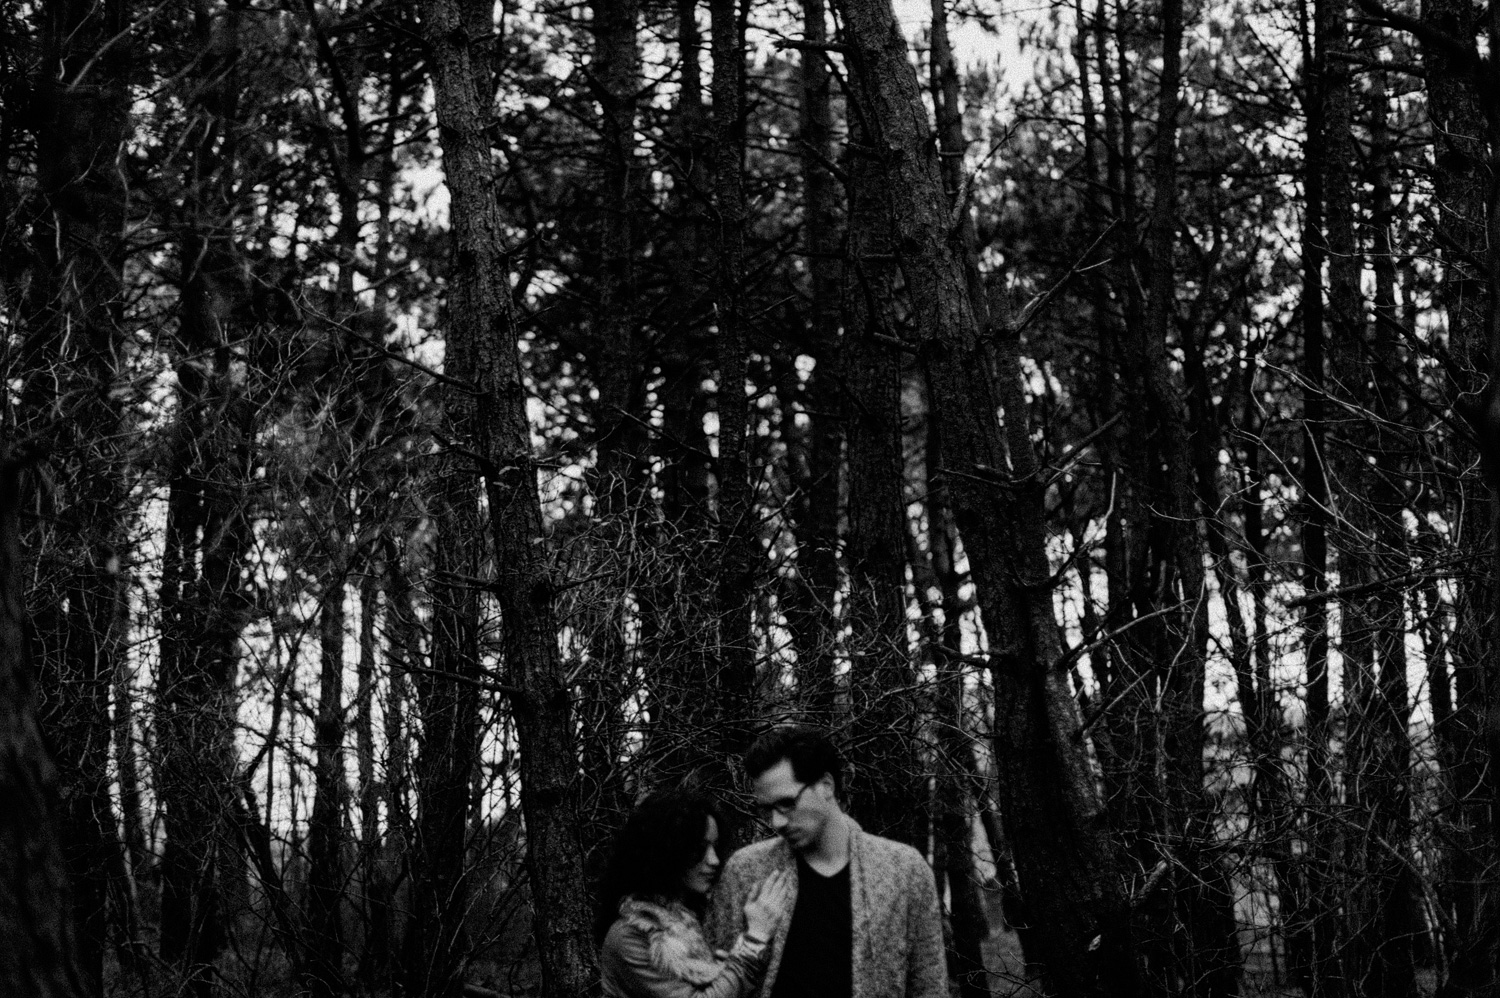 Guy and girl in forrest together